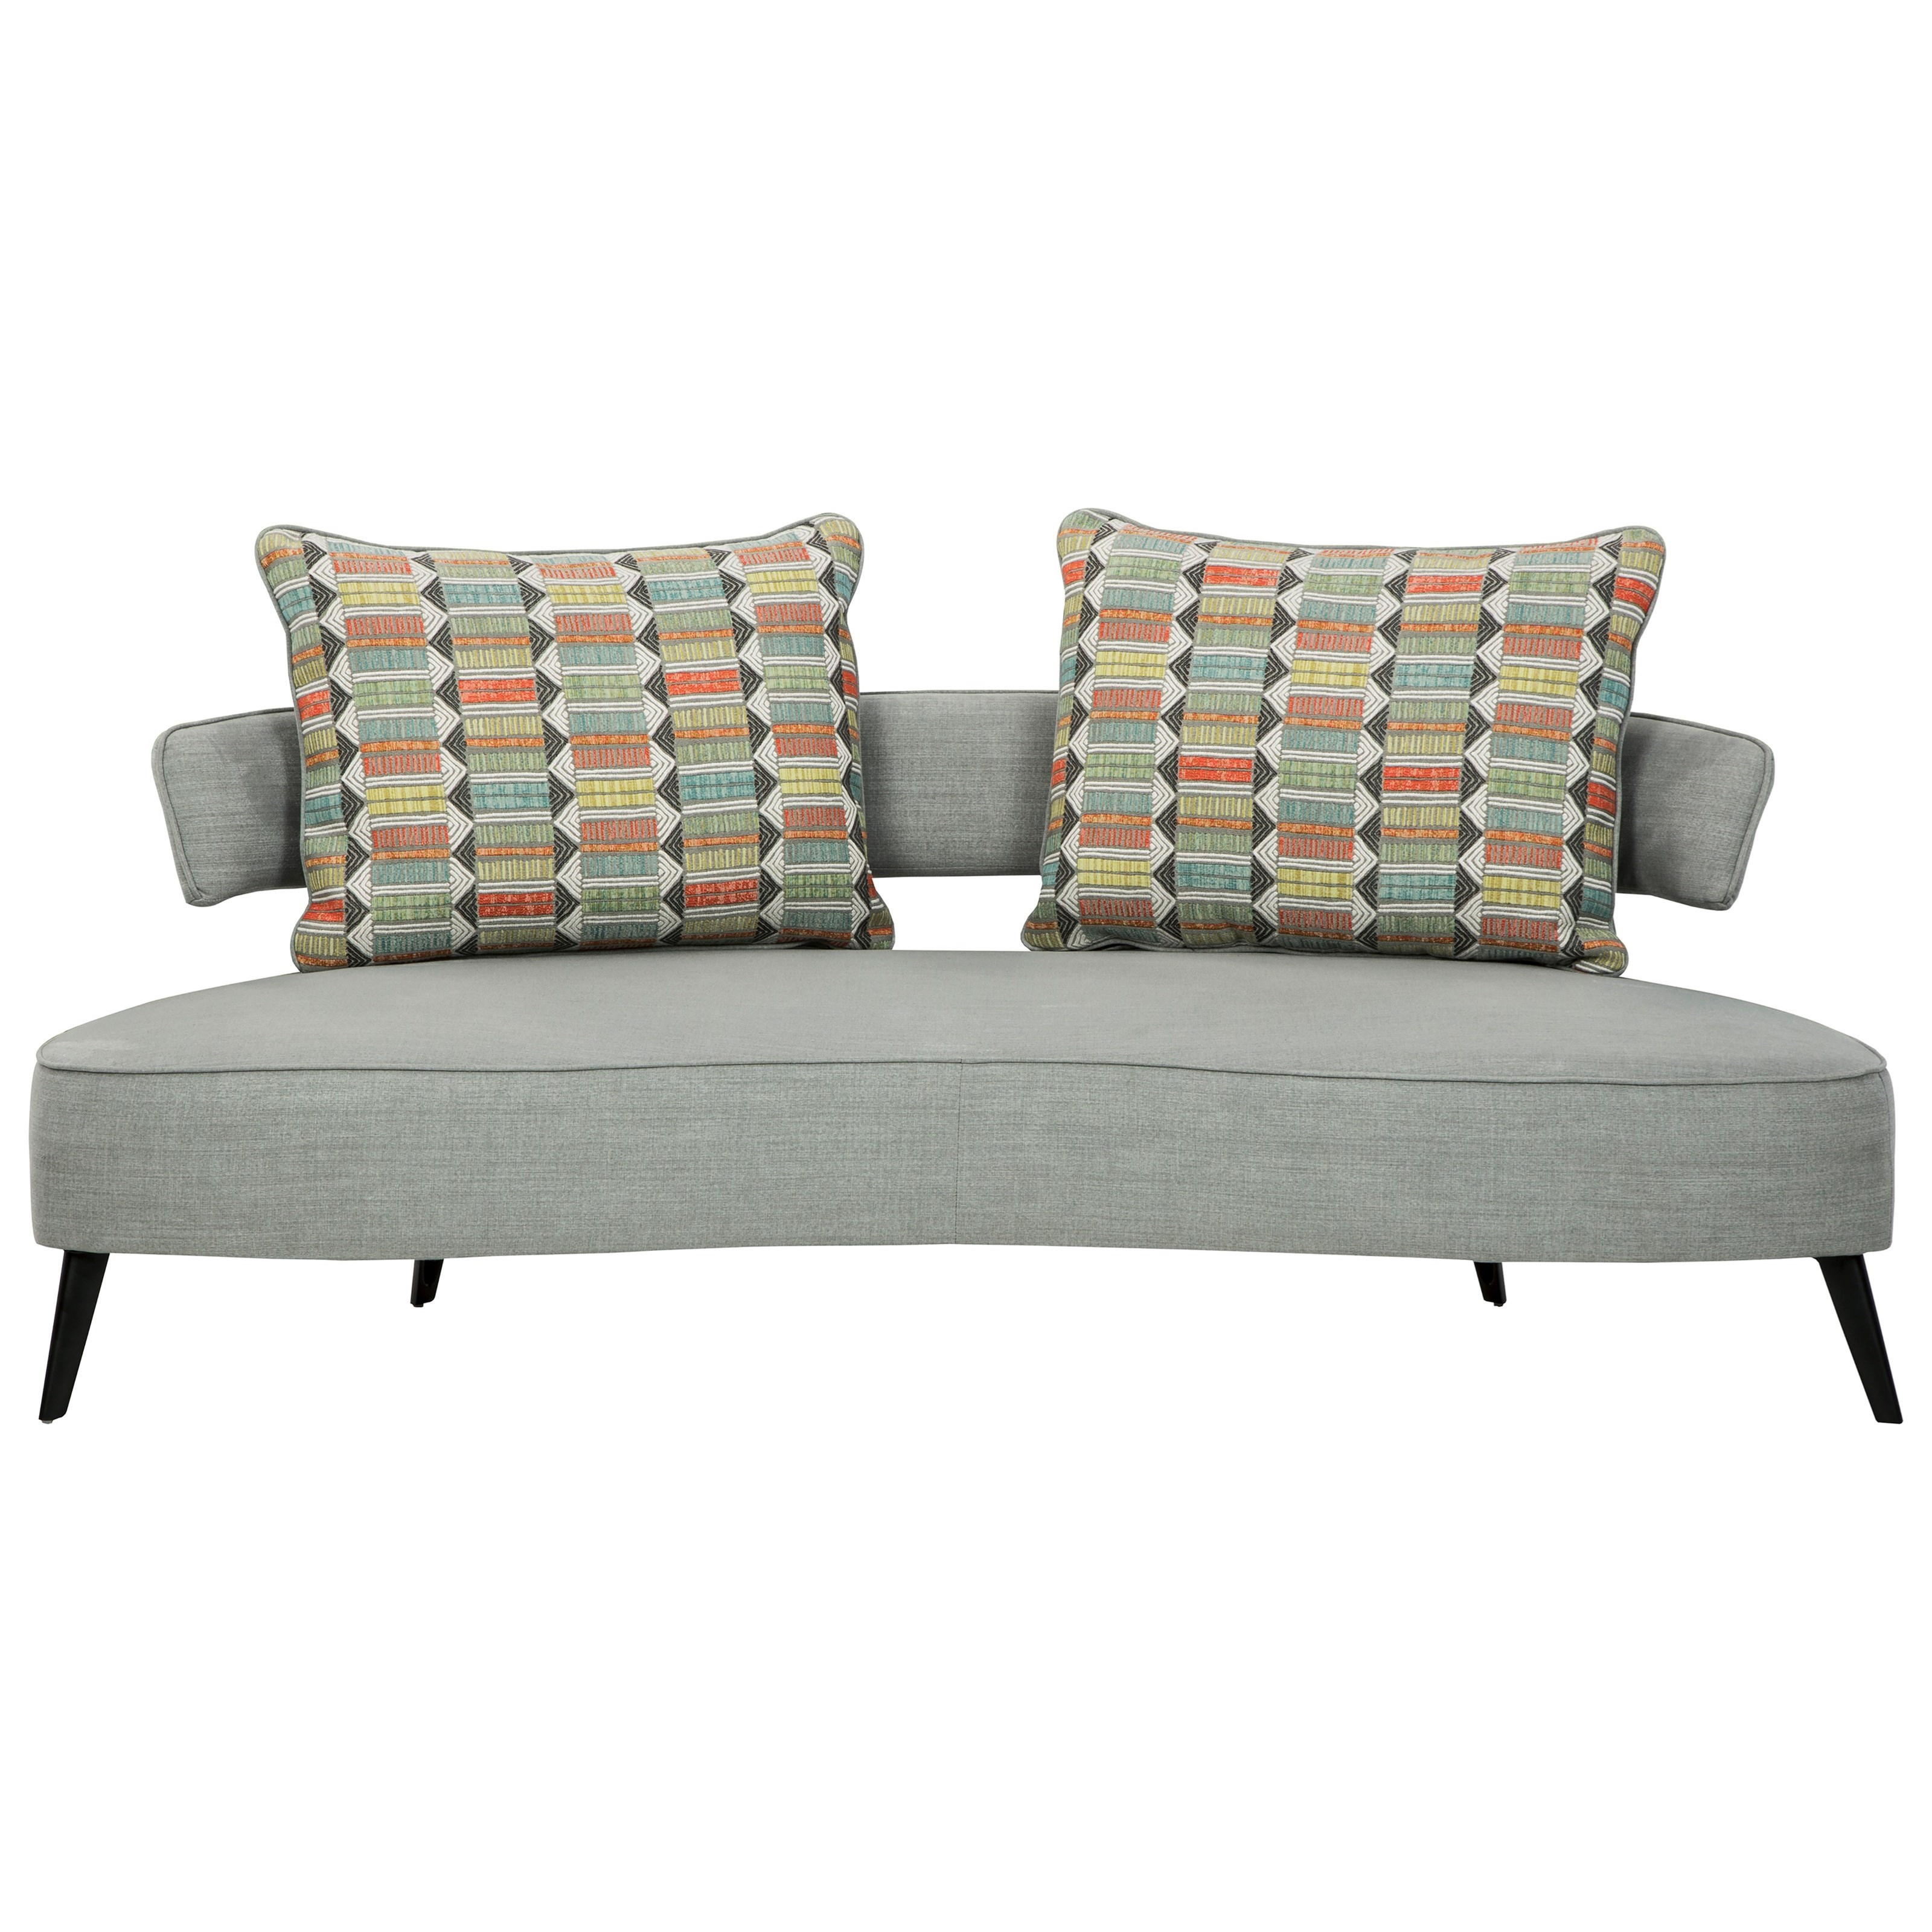 Hollyann Sofa by Signature Design by Ashley at Zak's Warehouse Clearance Center